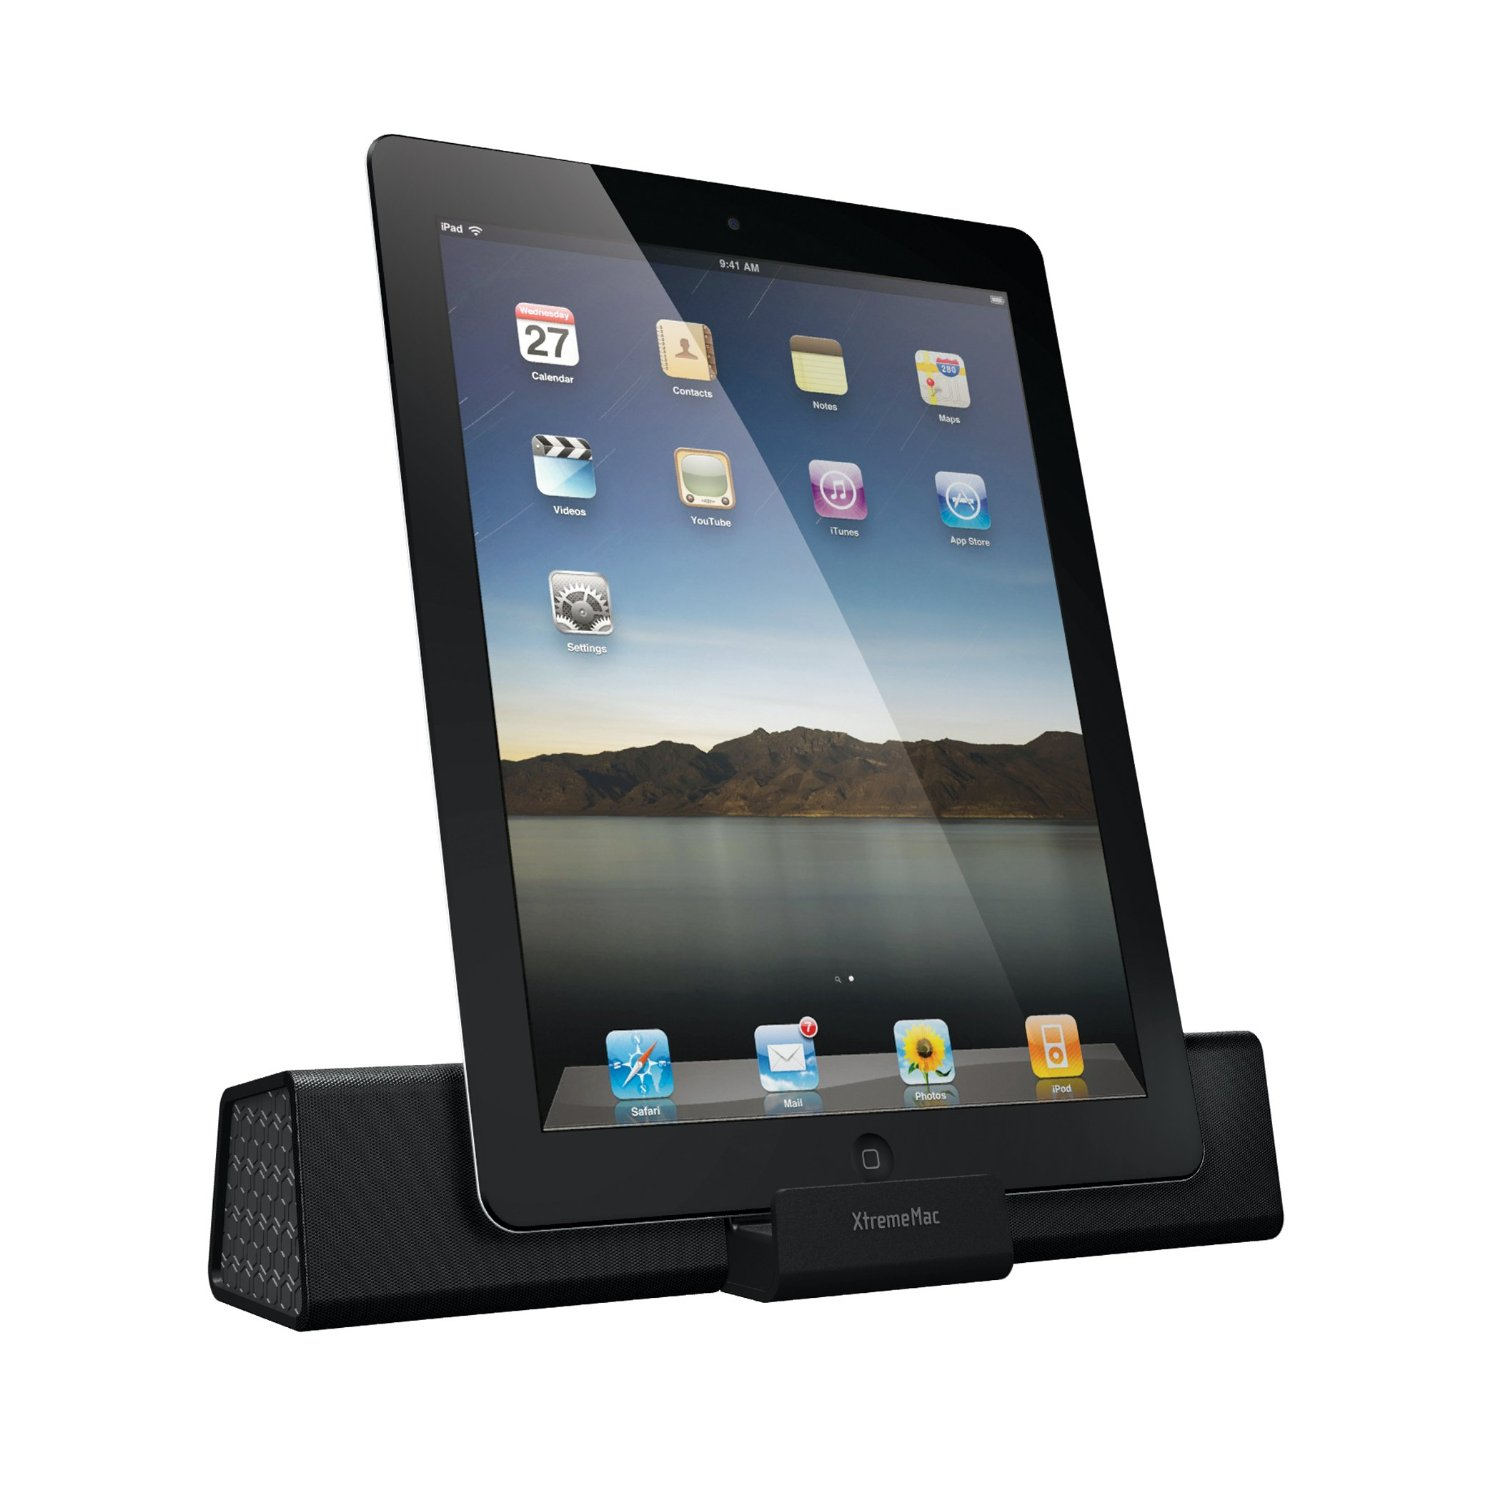 xtrememac soma travel portable speaker dock station system for ipad iphone ipod ebay. Black Bedroom Furniture Sets. Home Design Ideas